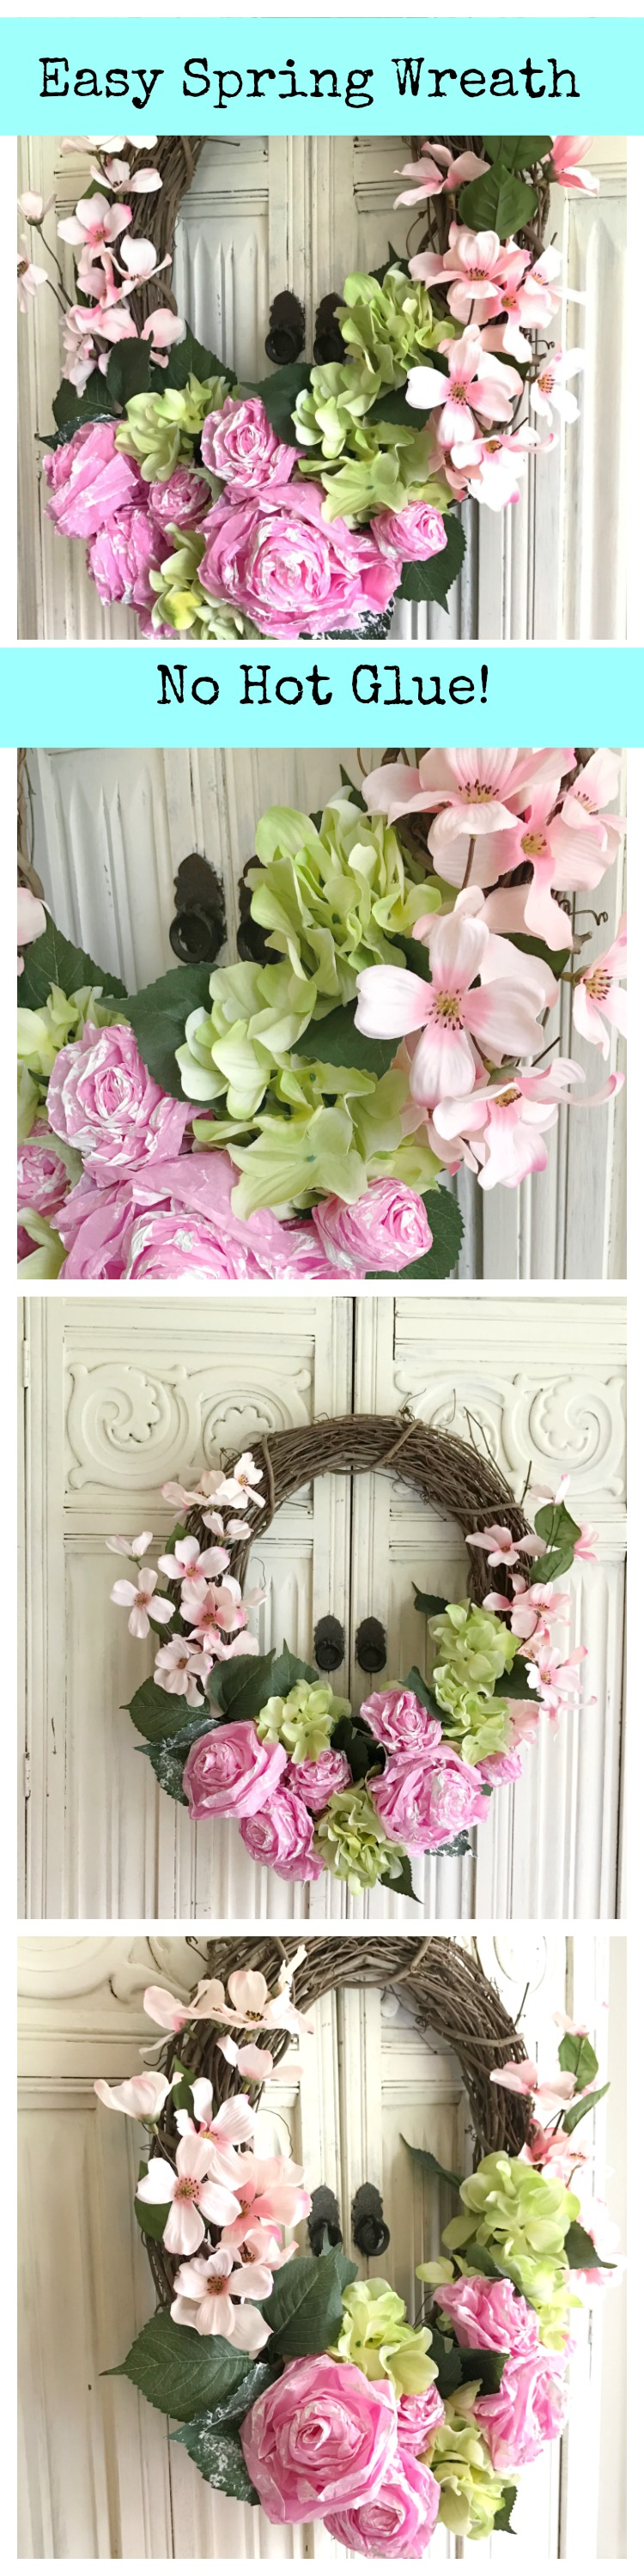 Easy Spring Wreath DIY paper tissue flower wreath by HallstromHome